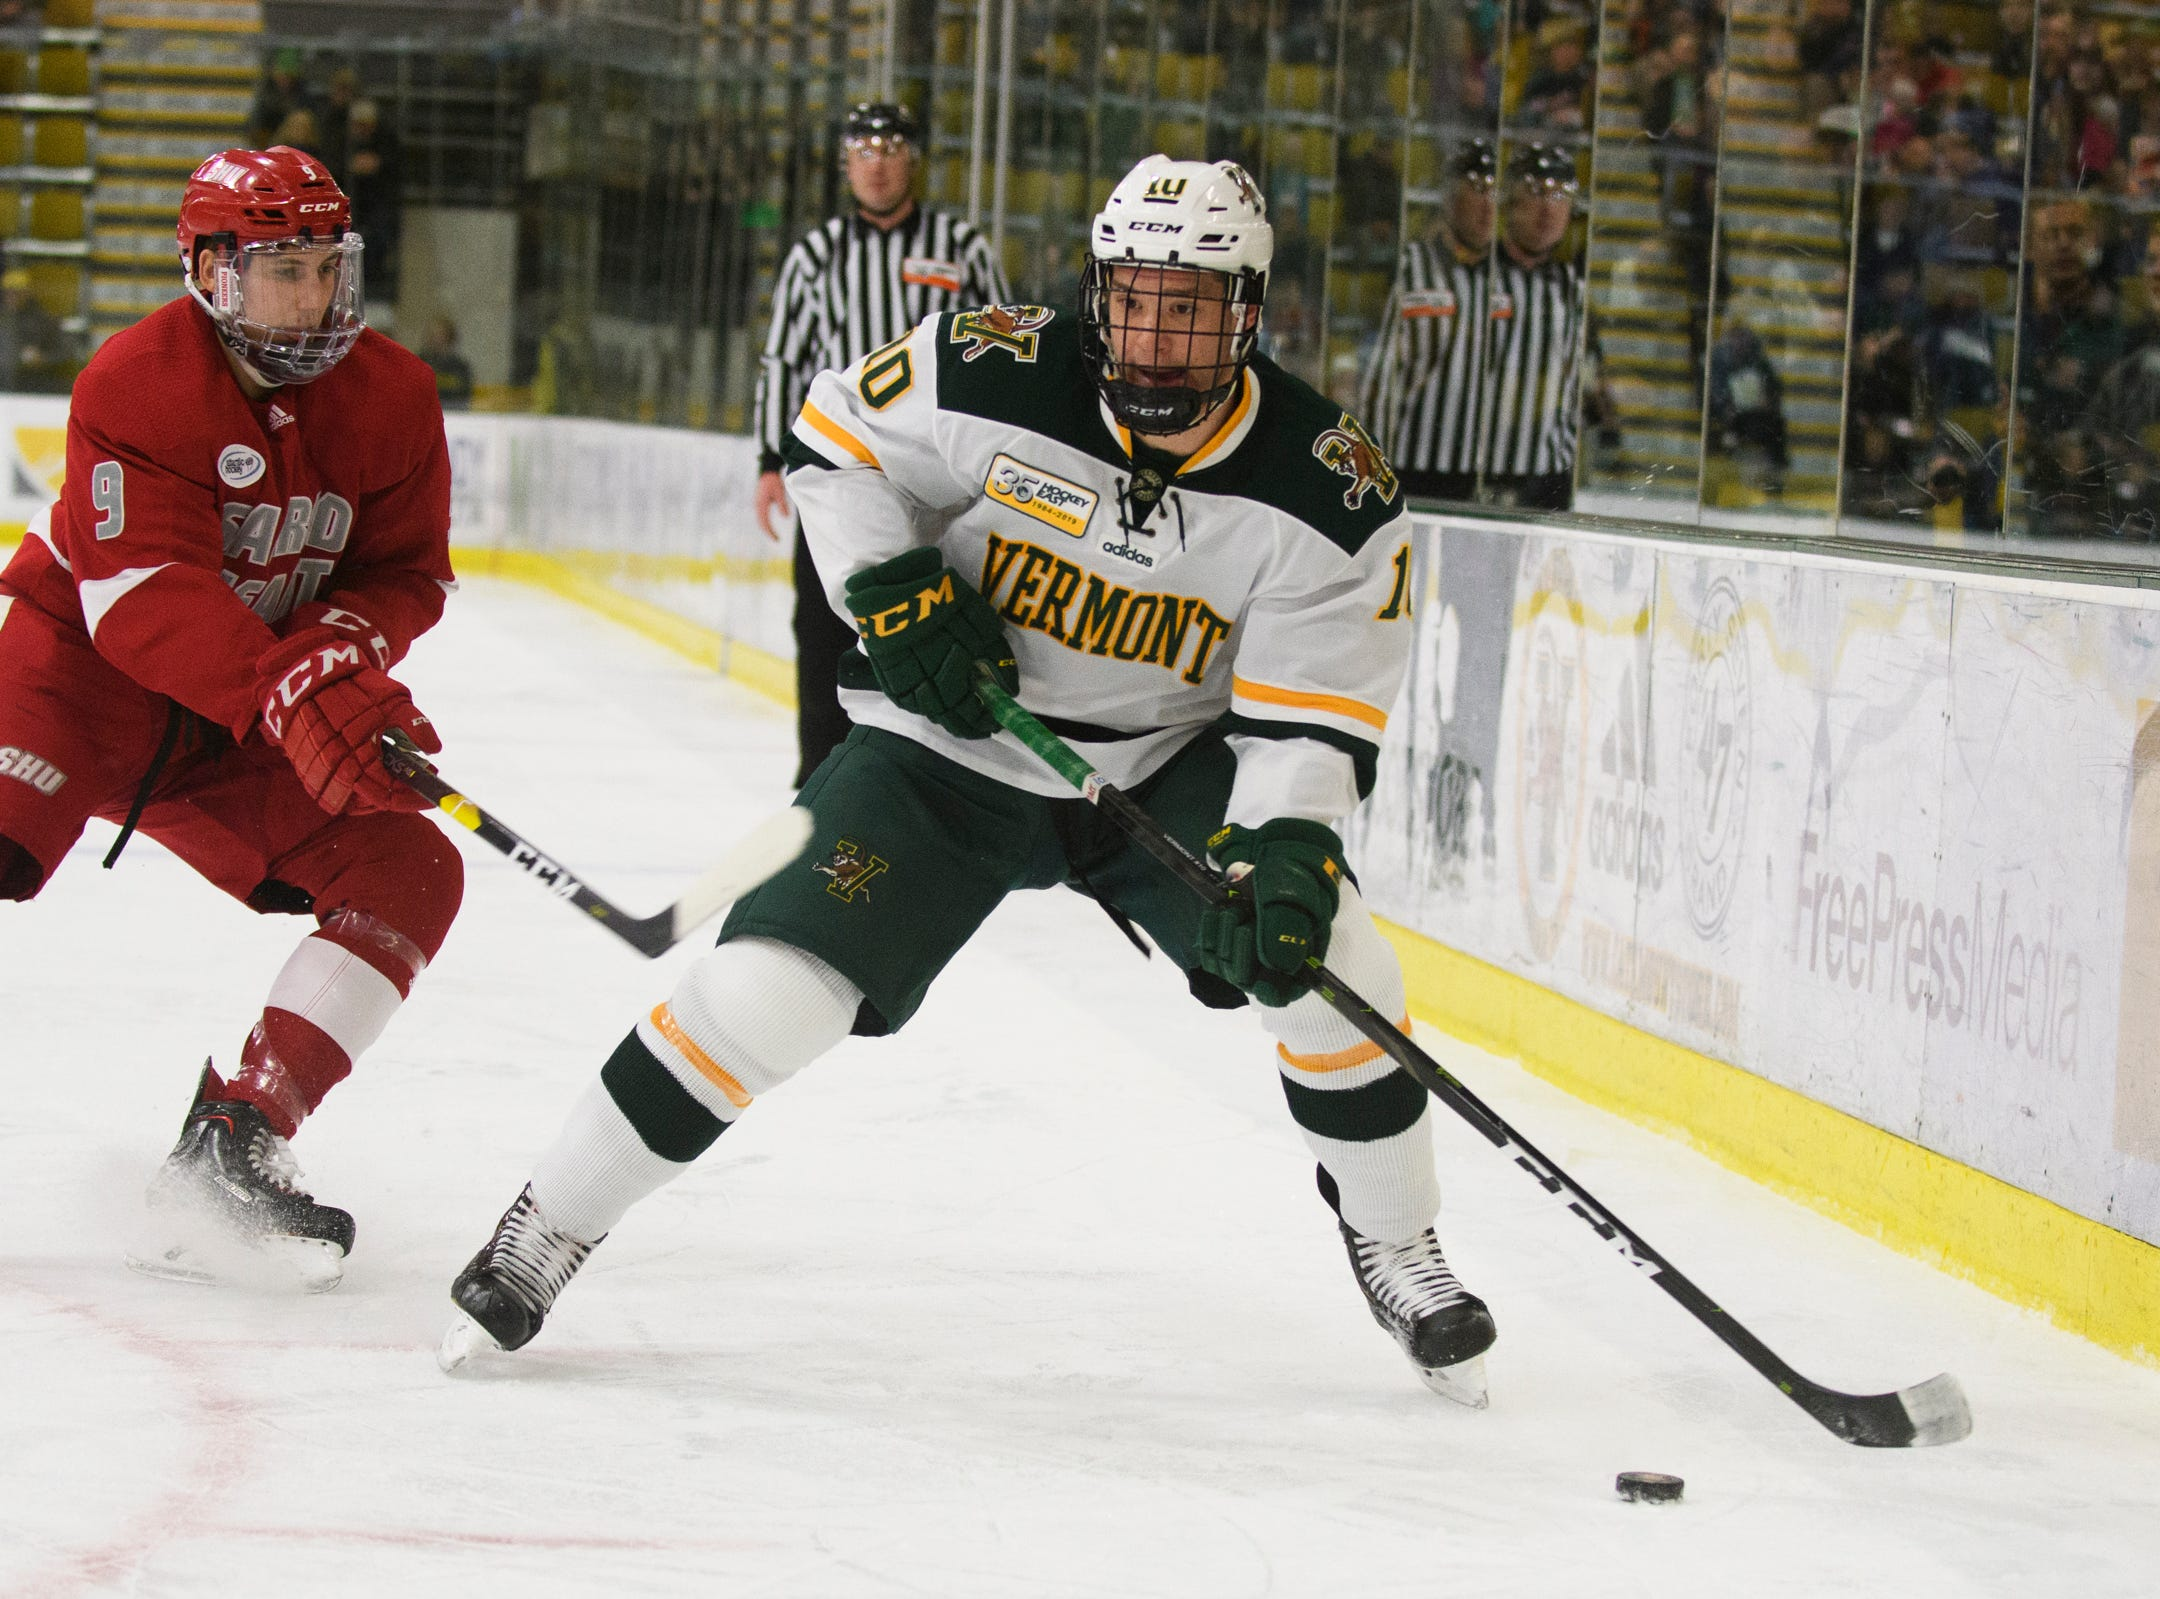 Vermont forward Vald Dzhioshvilli (10) looks to pass the puck during the men's hockey game between the Sacred Heart Pioneers and the Vermont Catamounts at Gutterson Field House on Friday night January 4, 2019 in Burlington.